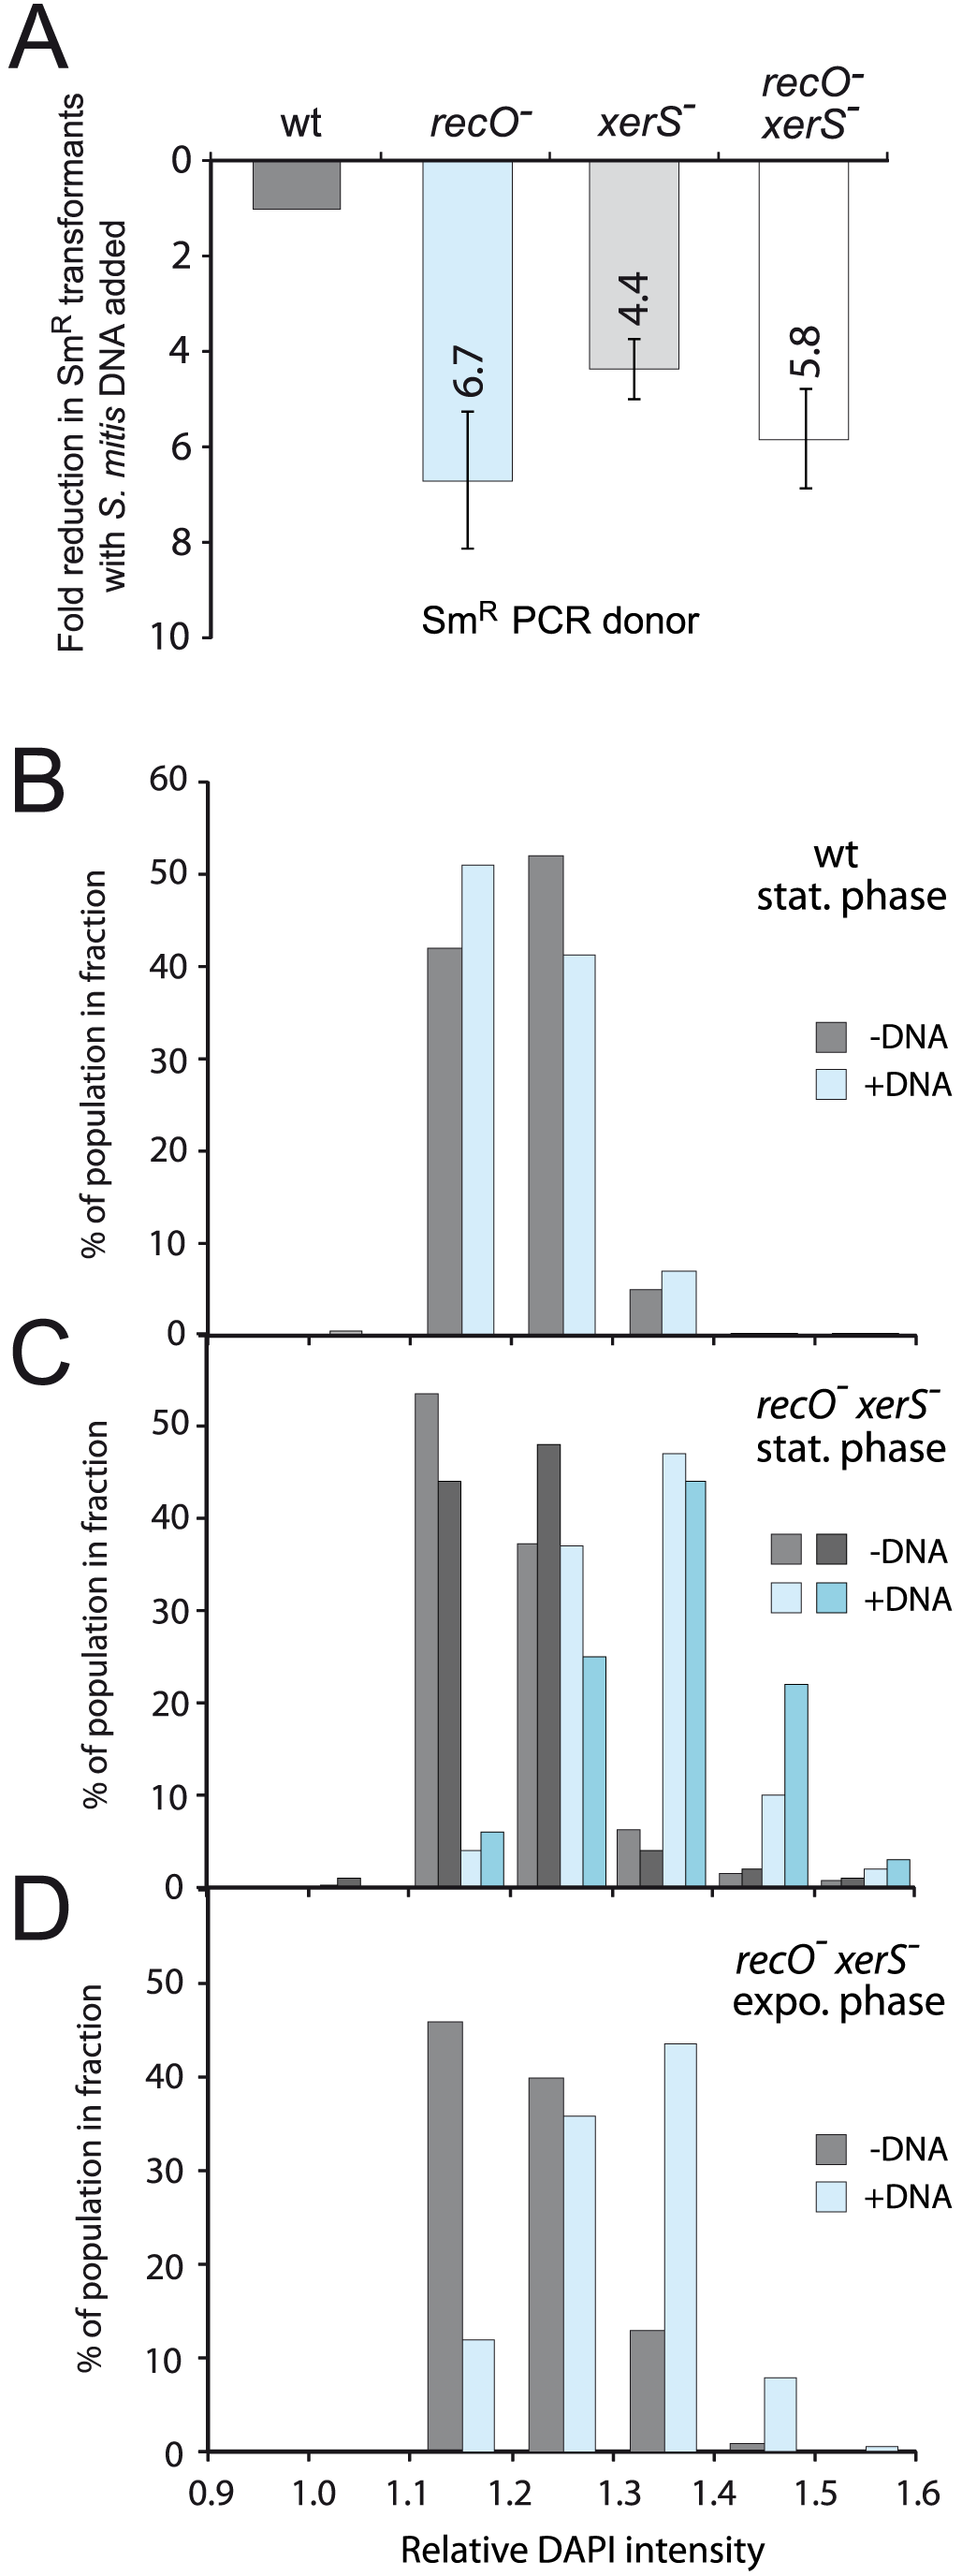 High frequency formation of chromosome dimers upon transformation with <i>S. mitis</i> chromosomal DNA.